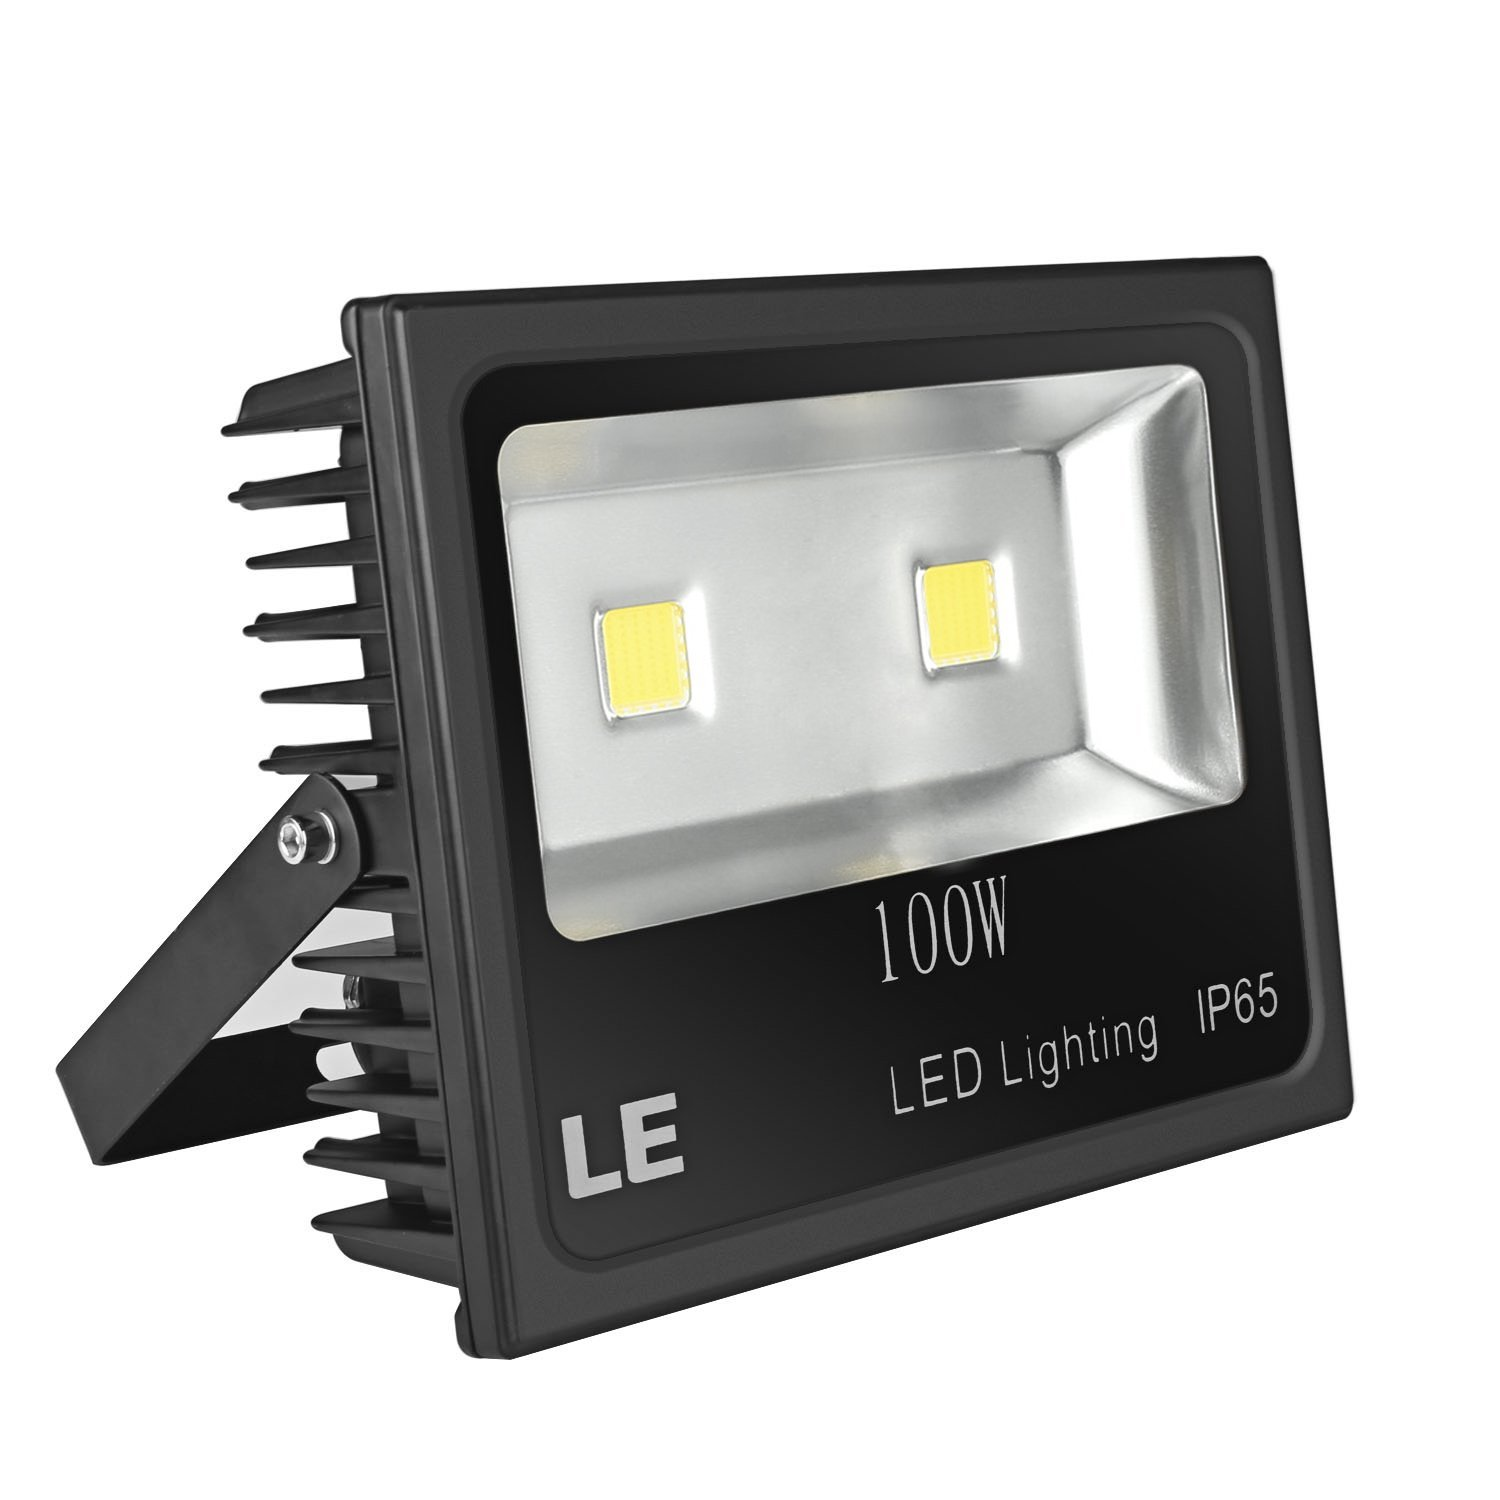 Le 100w projecteur led super lumineux clairage ext rieur for Projecteur led exterieur 100w